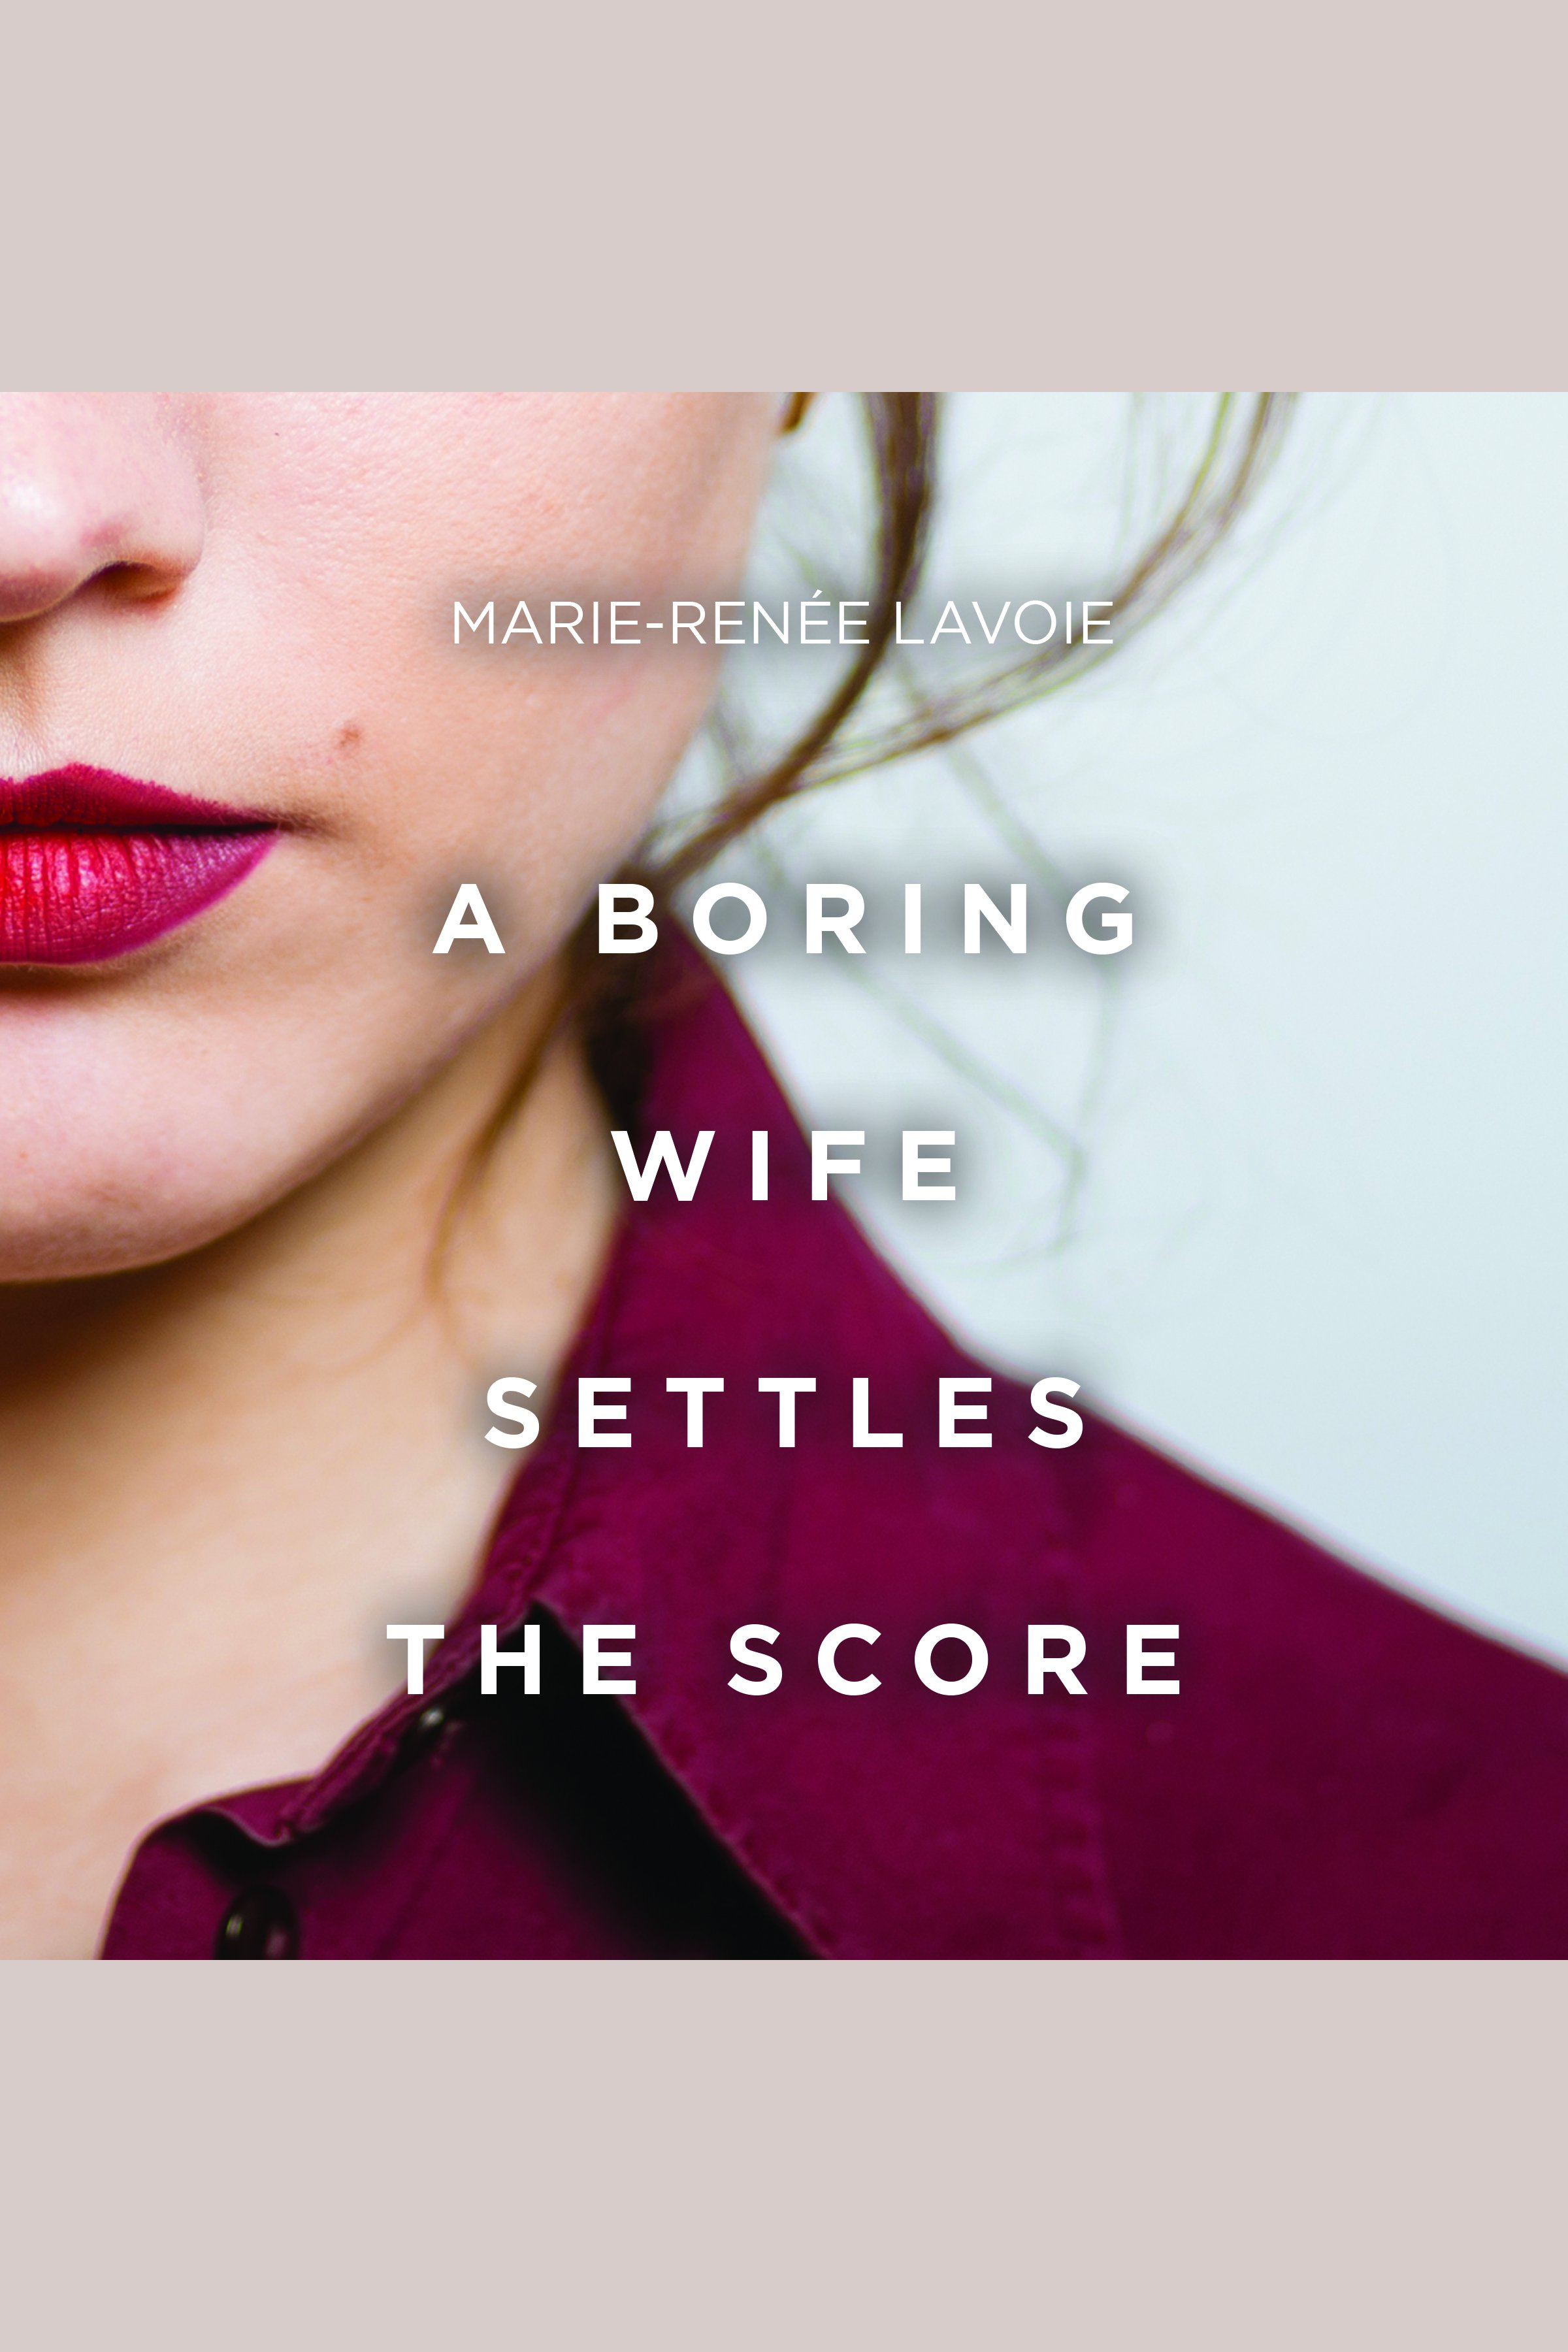 Boring Wife Settles the Score, A